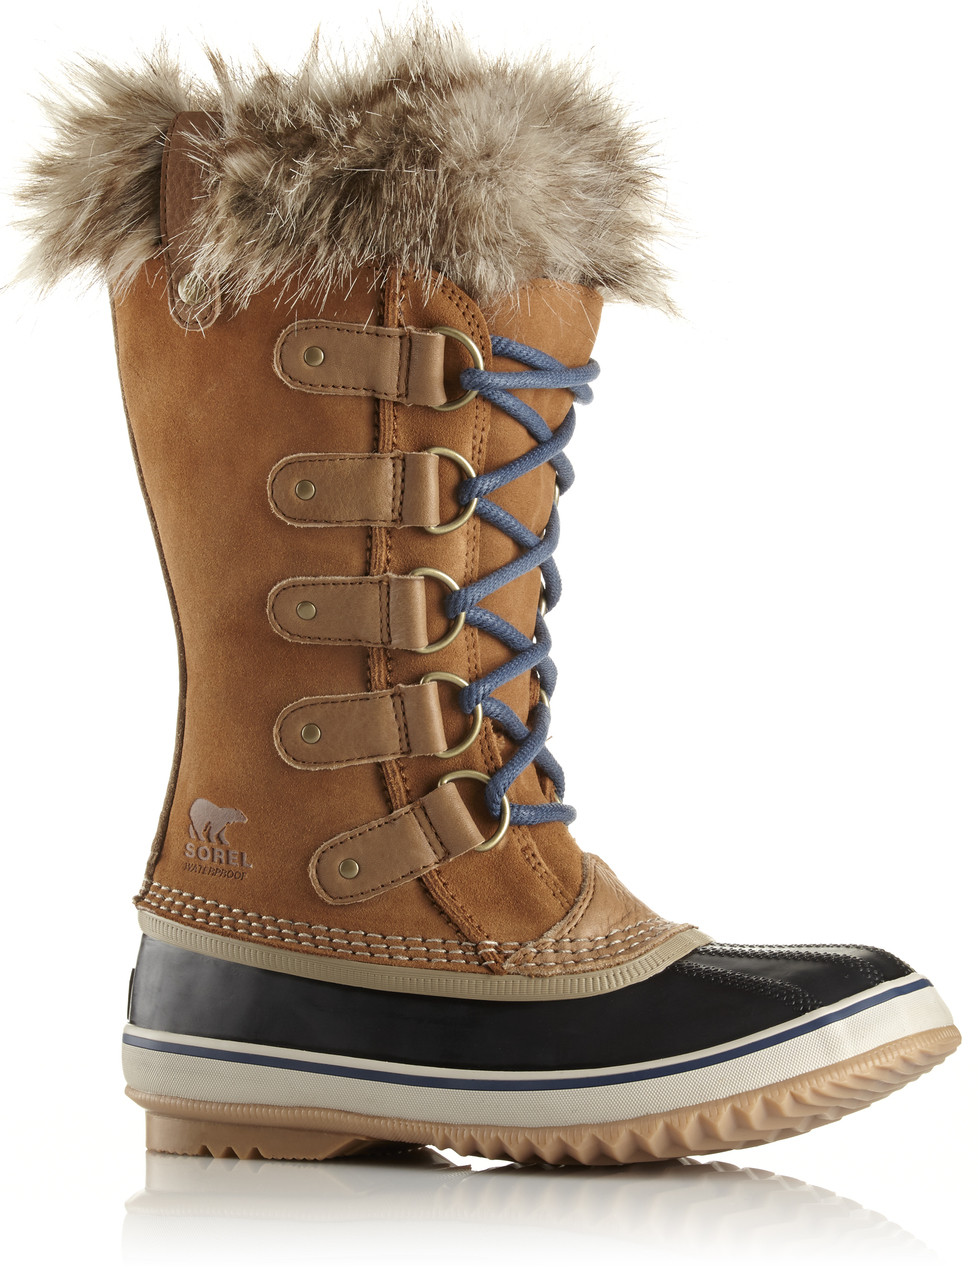 8c026d6a4dd2 ... Sorel Women s Joan of Arctic Elk. Image 1